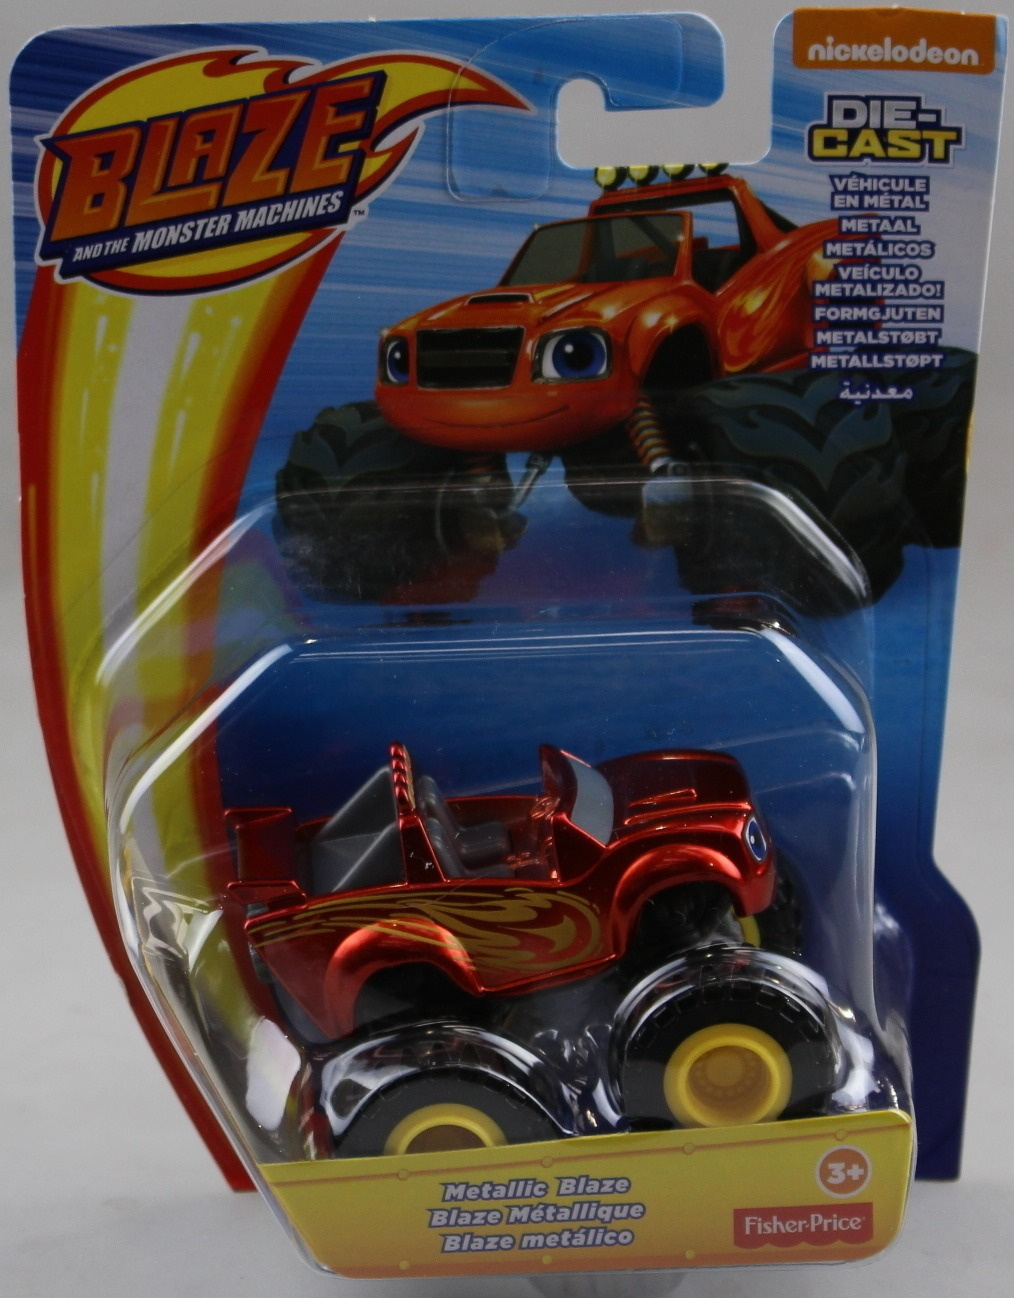 Fisher Price Nickelodeon Blaze And The Monster Machines Metallic Blaze Vehicle By Fisher Price Shop Online For Toys In The United States